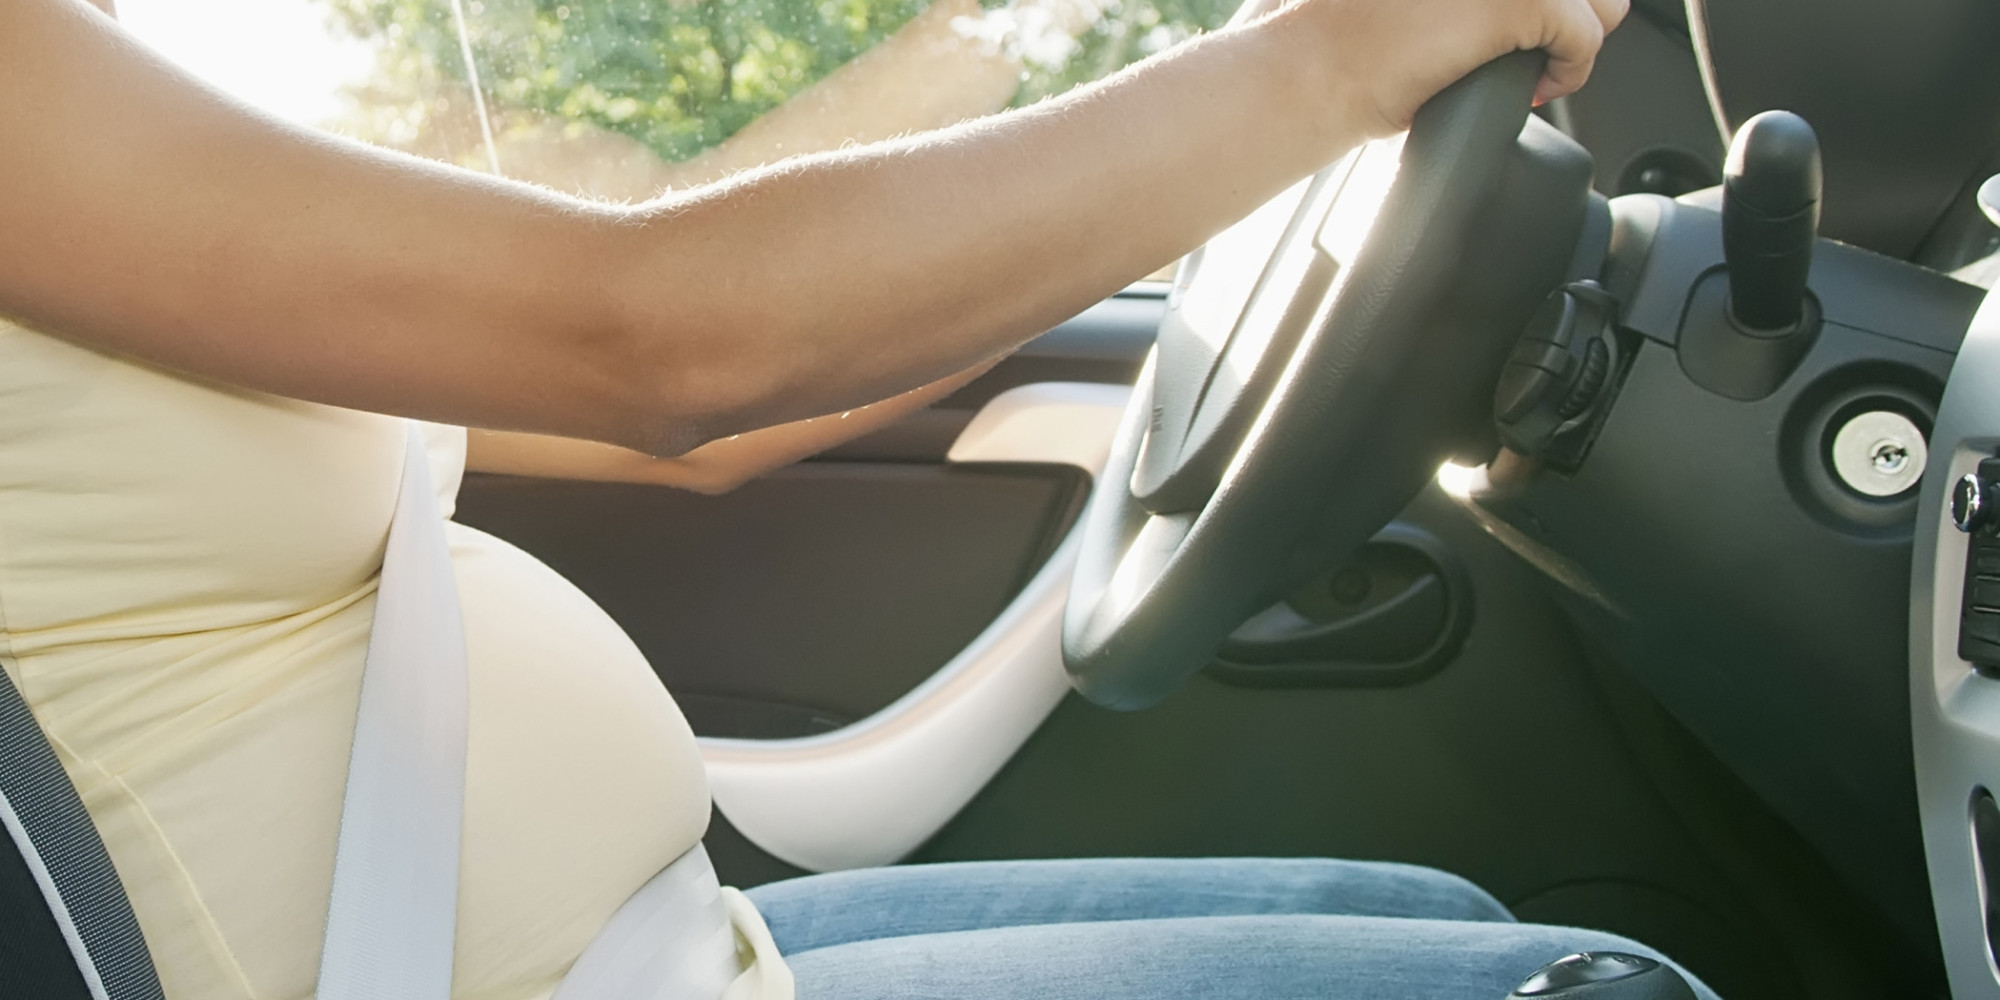 Teen Driving App >> Pregnant Women At Higher Risk For Serious Car Accidents (STUDY)